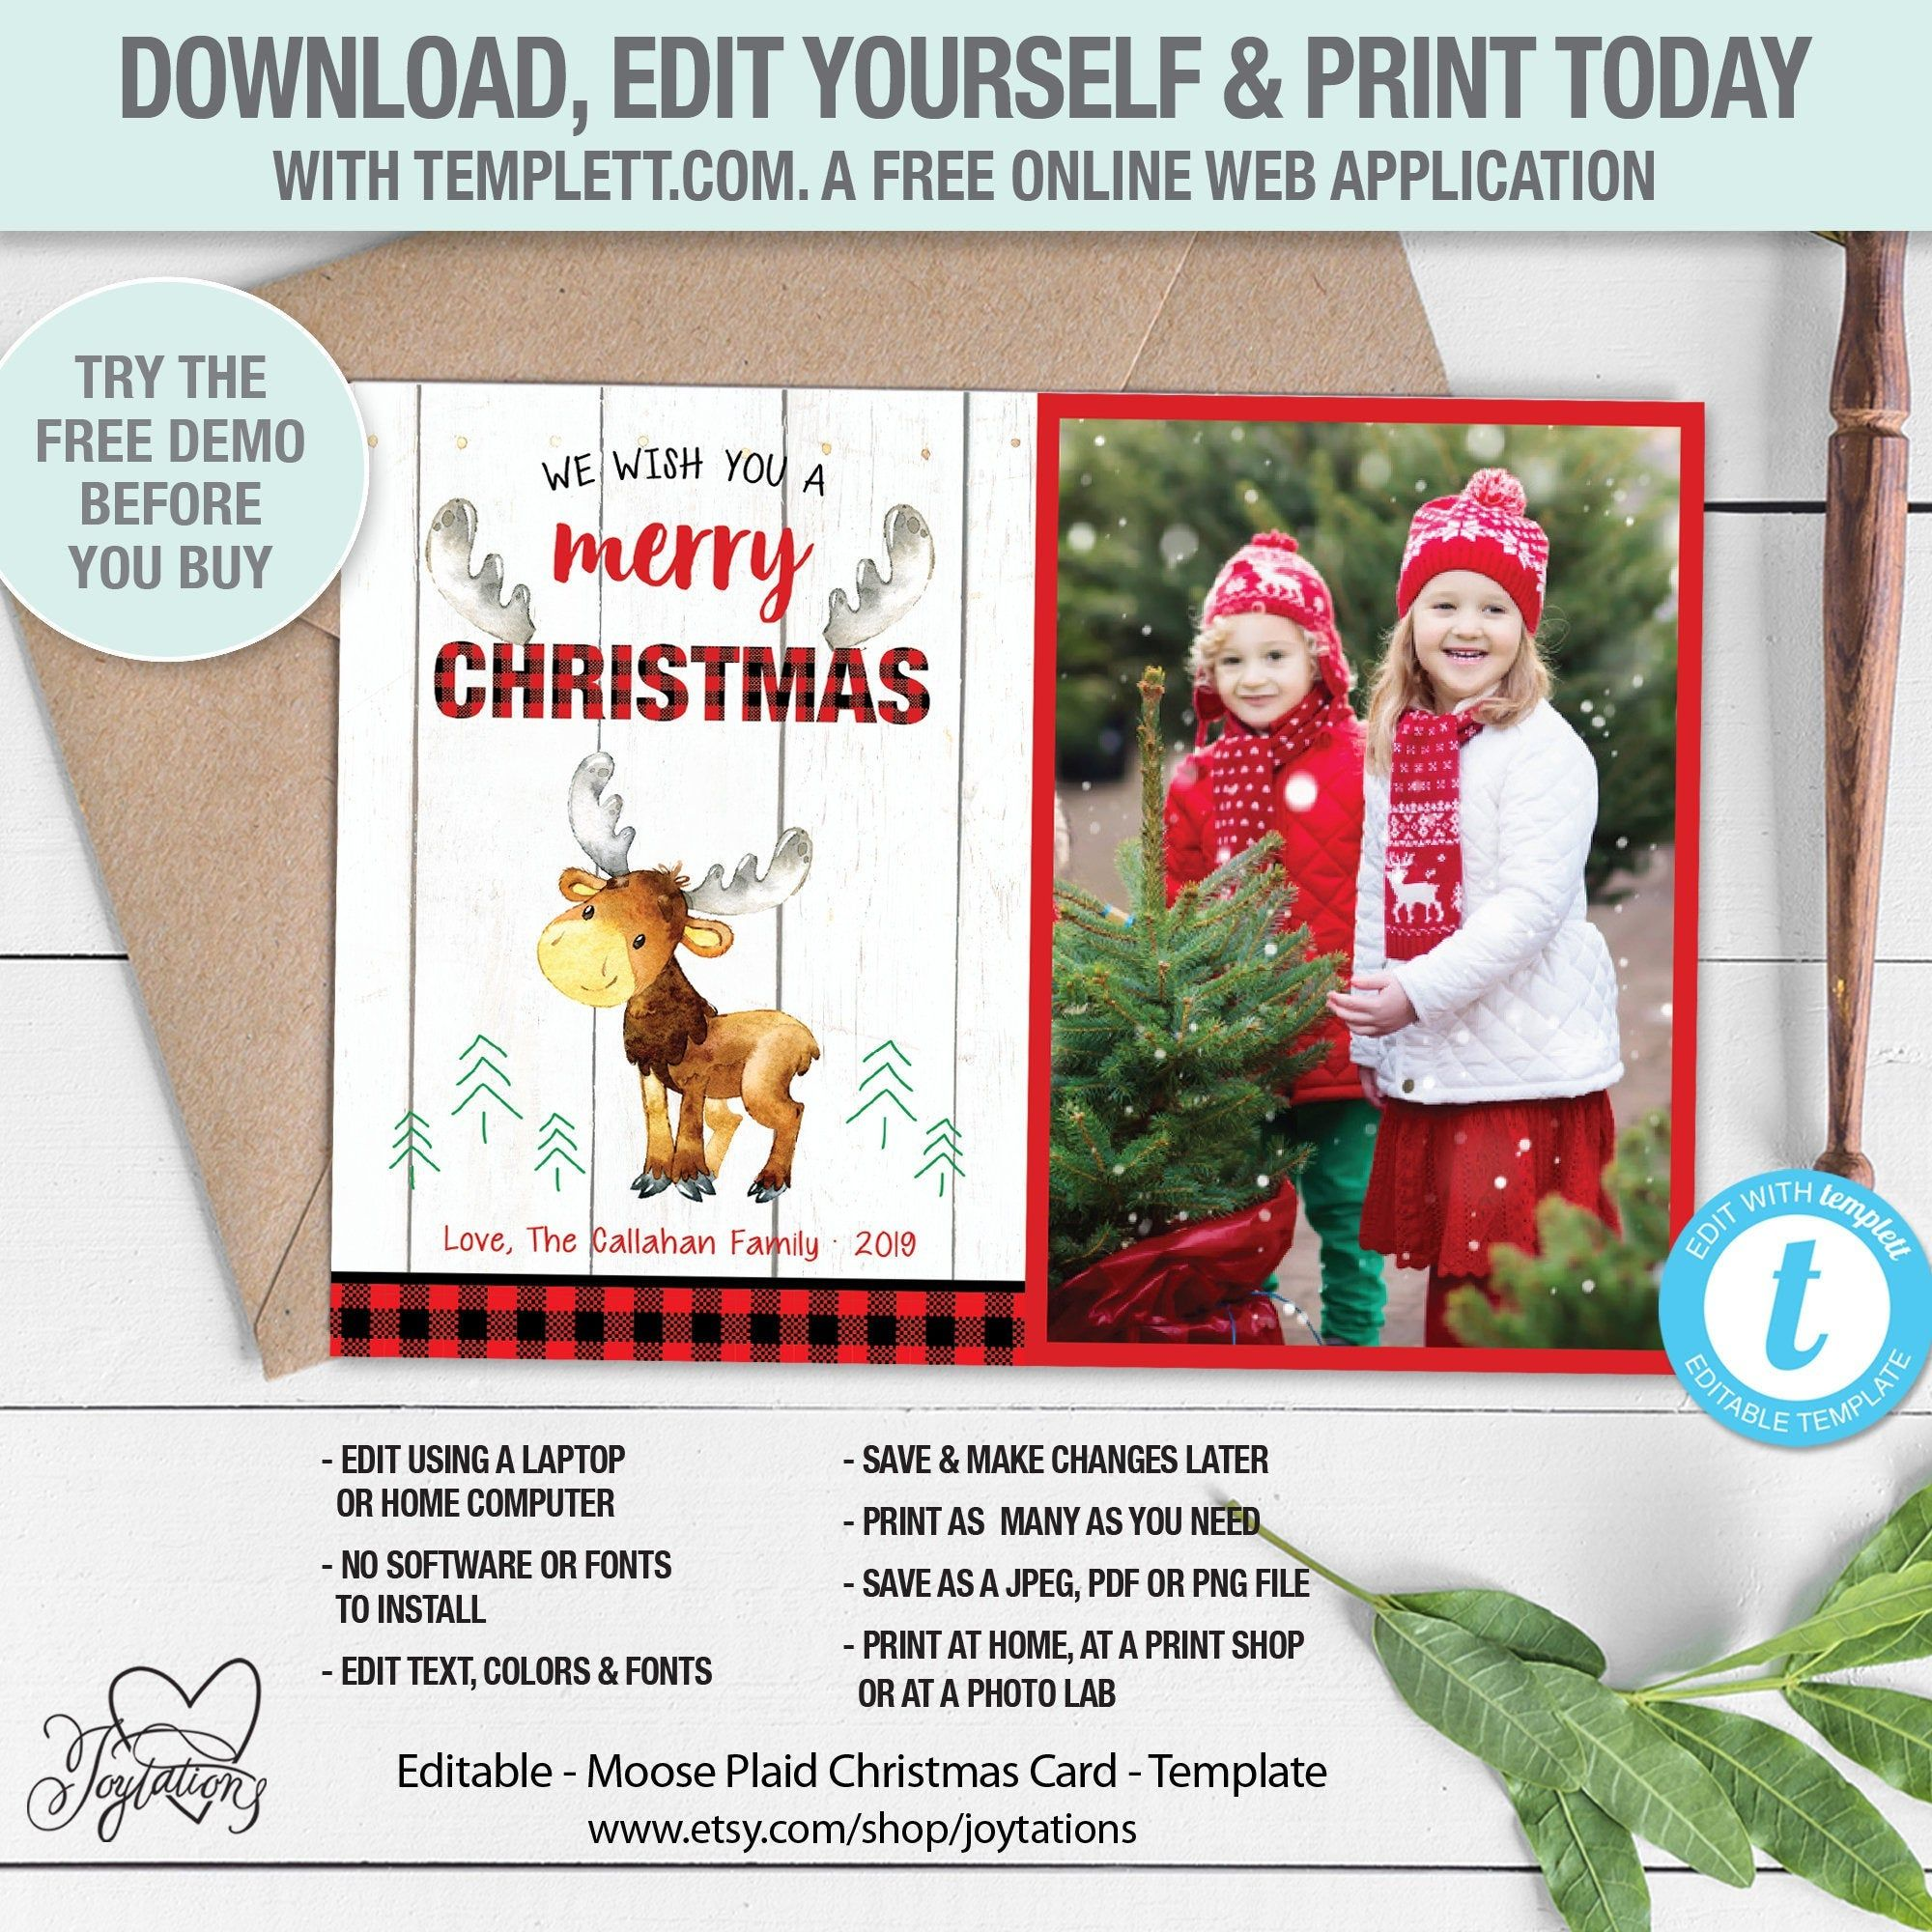 Editable Moose Plaid Holiday Greeting Card With Photos Template Photographs Pictures Christmas Card Holiday Greeting Cards Holiday Greetings Seasonal Cards